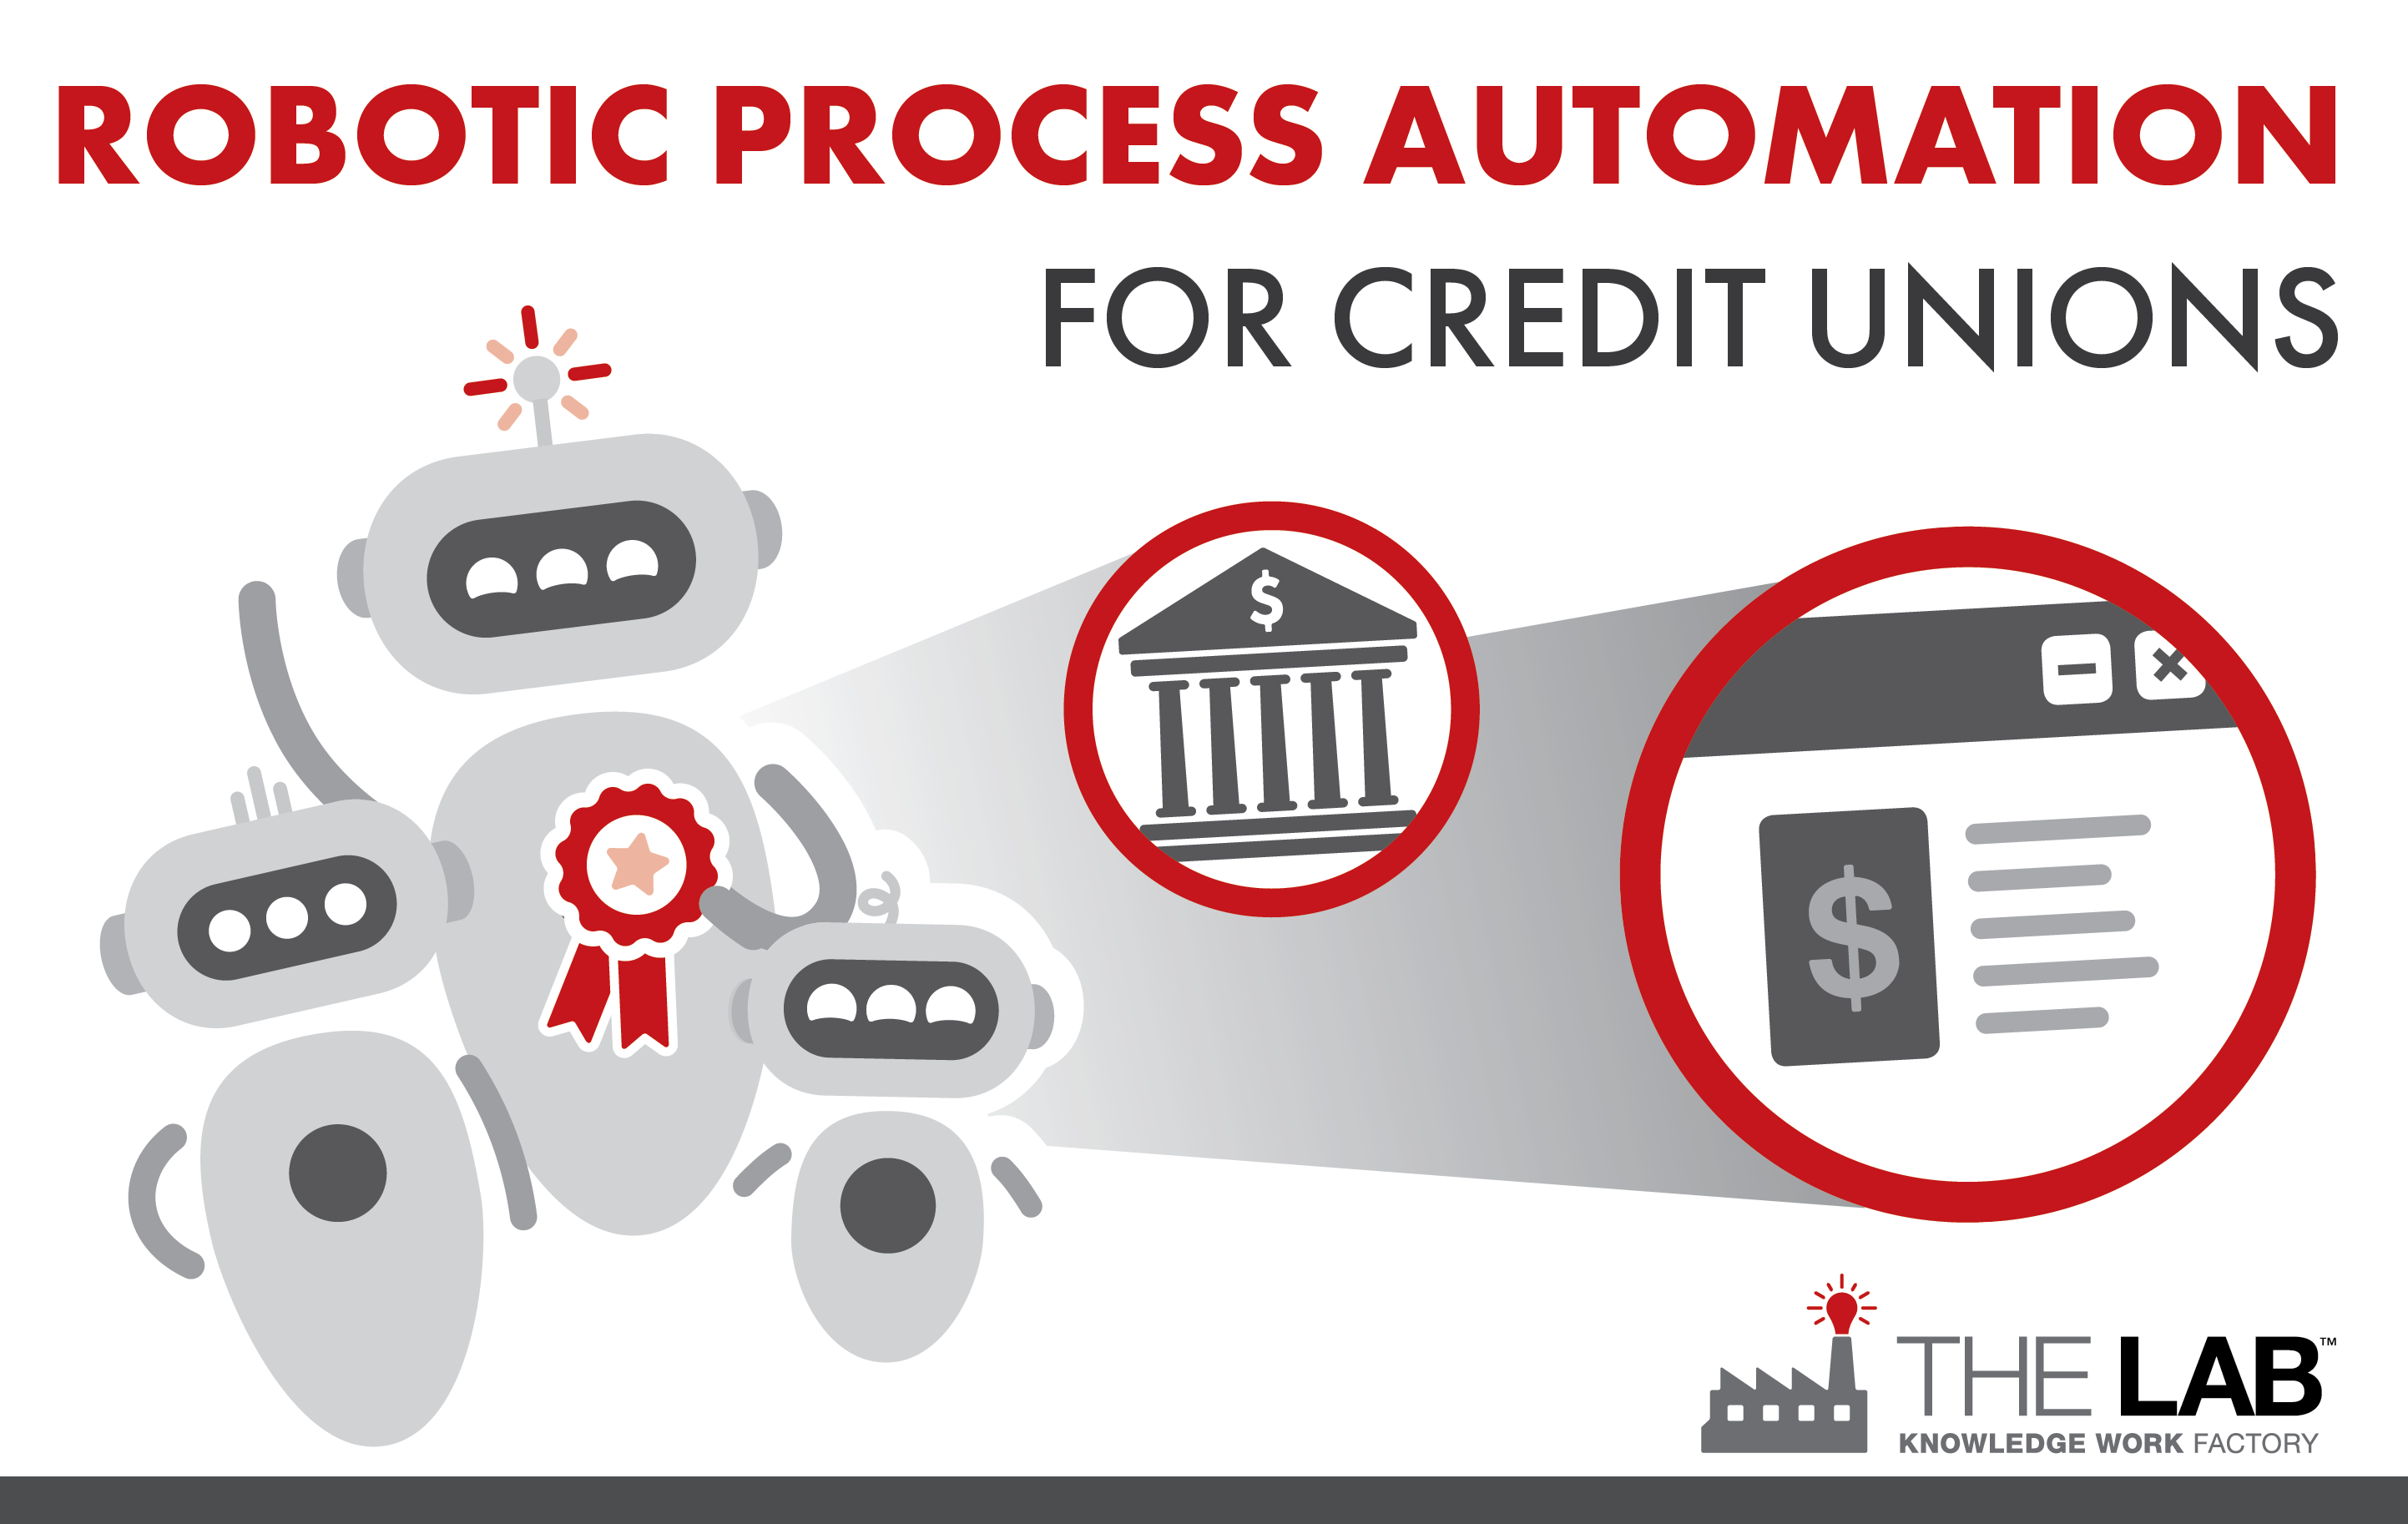 Robotic Process Automation (RPA) in Credit Unions